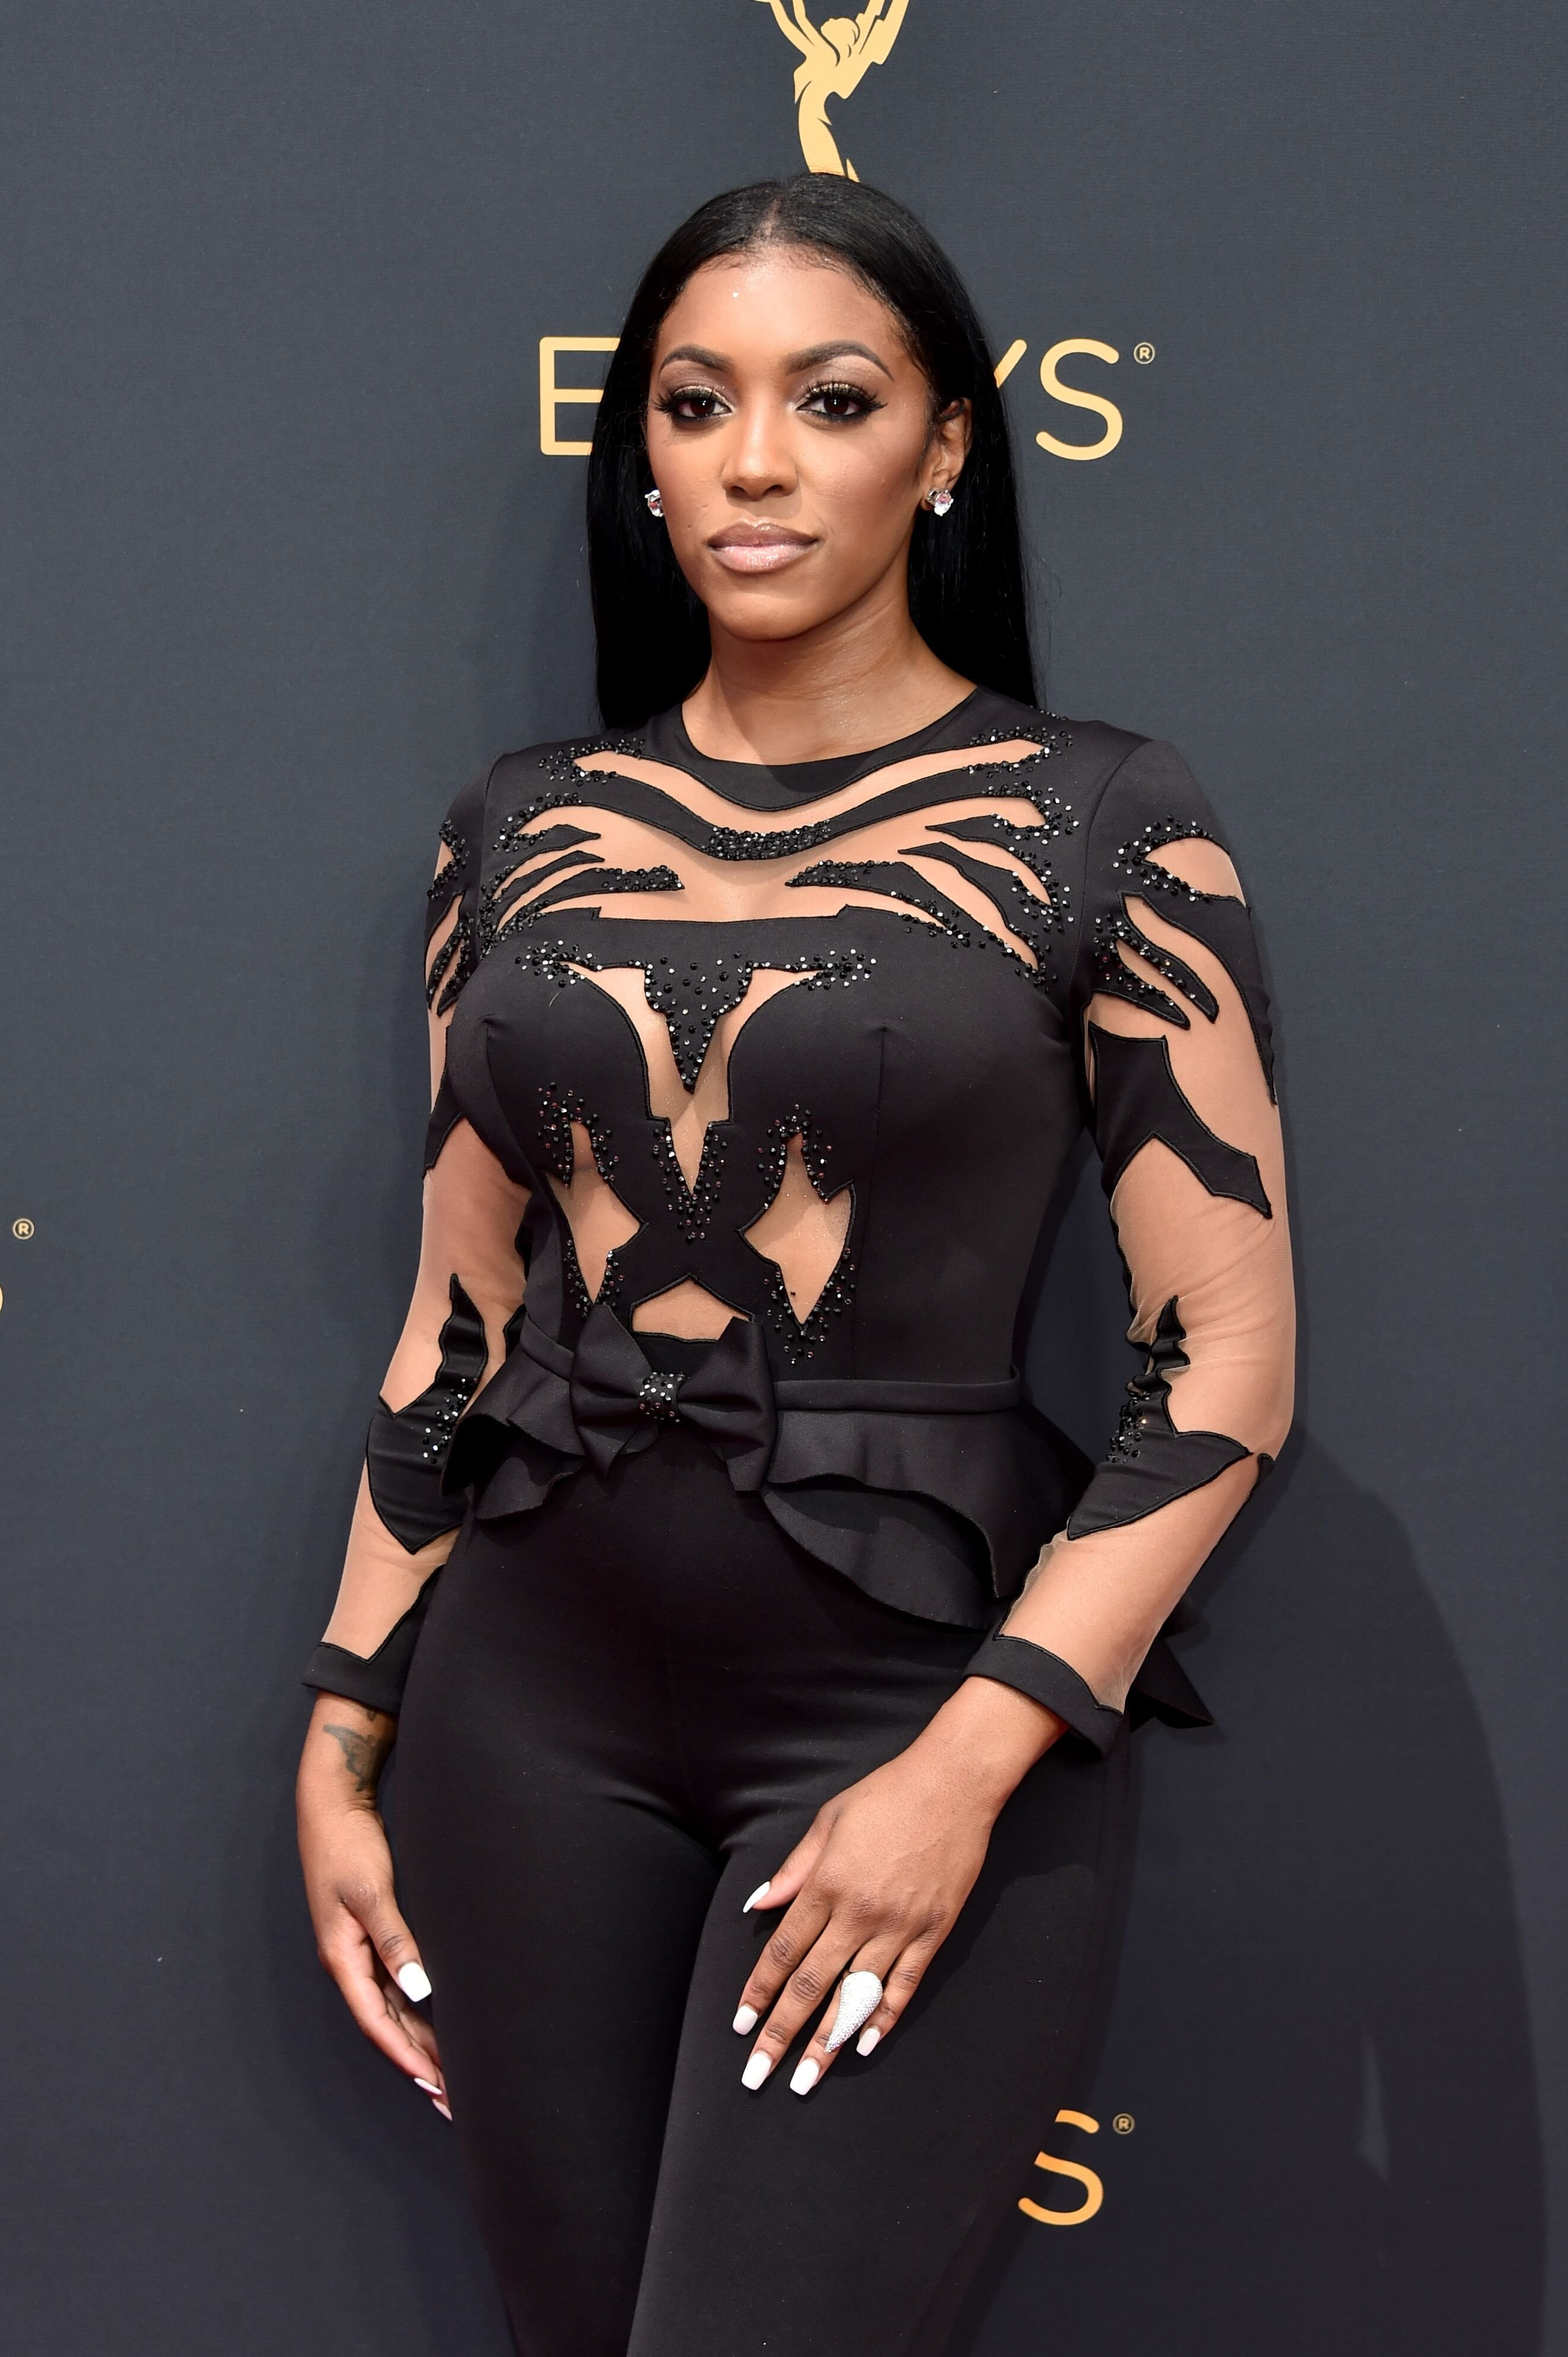 Porsha Williams at the 68th Annual Primetime Emmy Awards on Sept. 18, 2016 in California | Photo: Getty Images